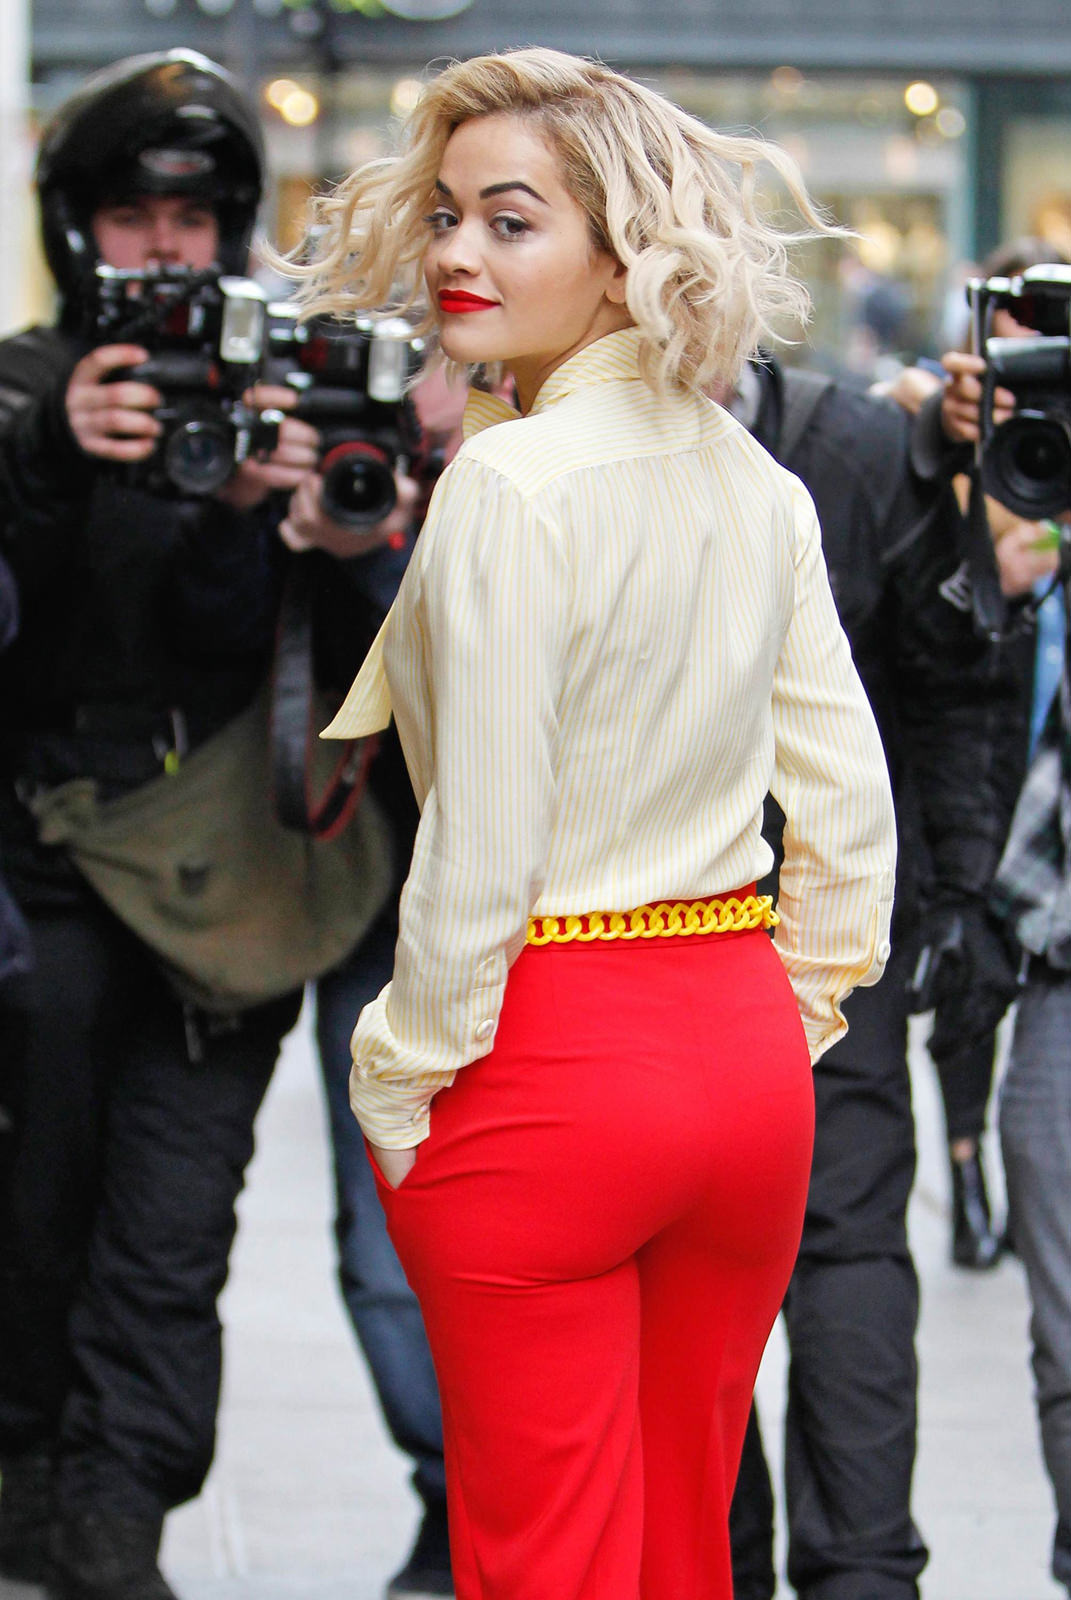 Rita Ora Photo Gallery